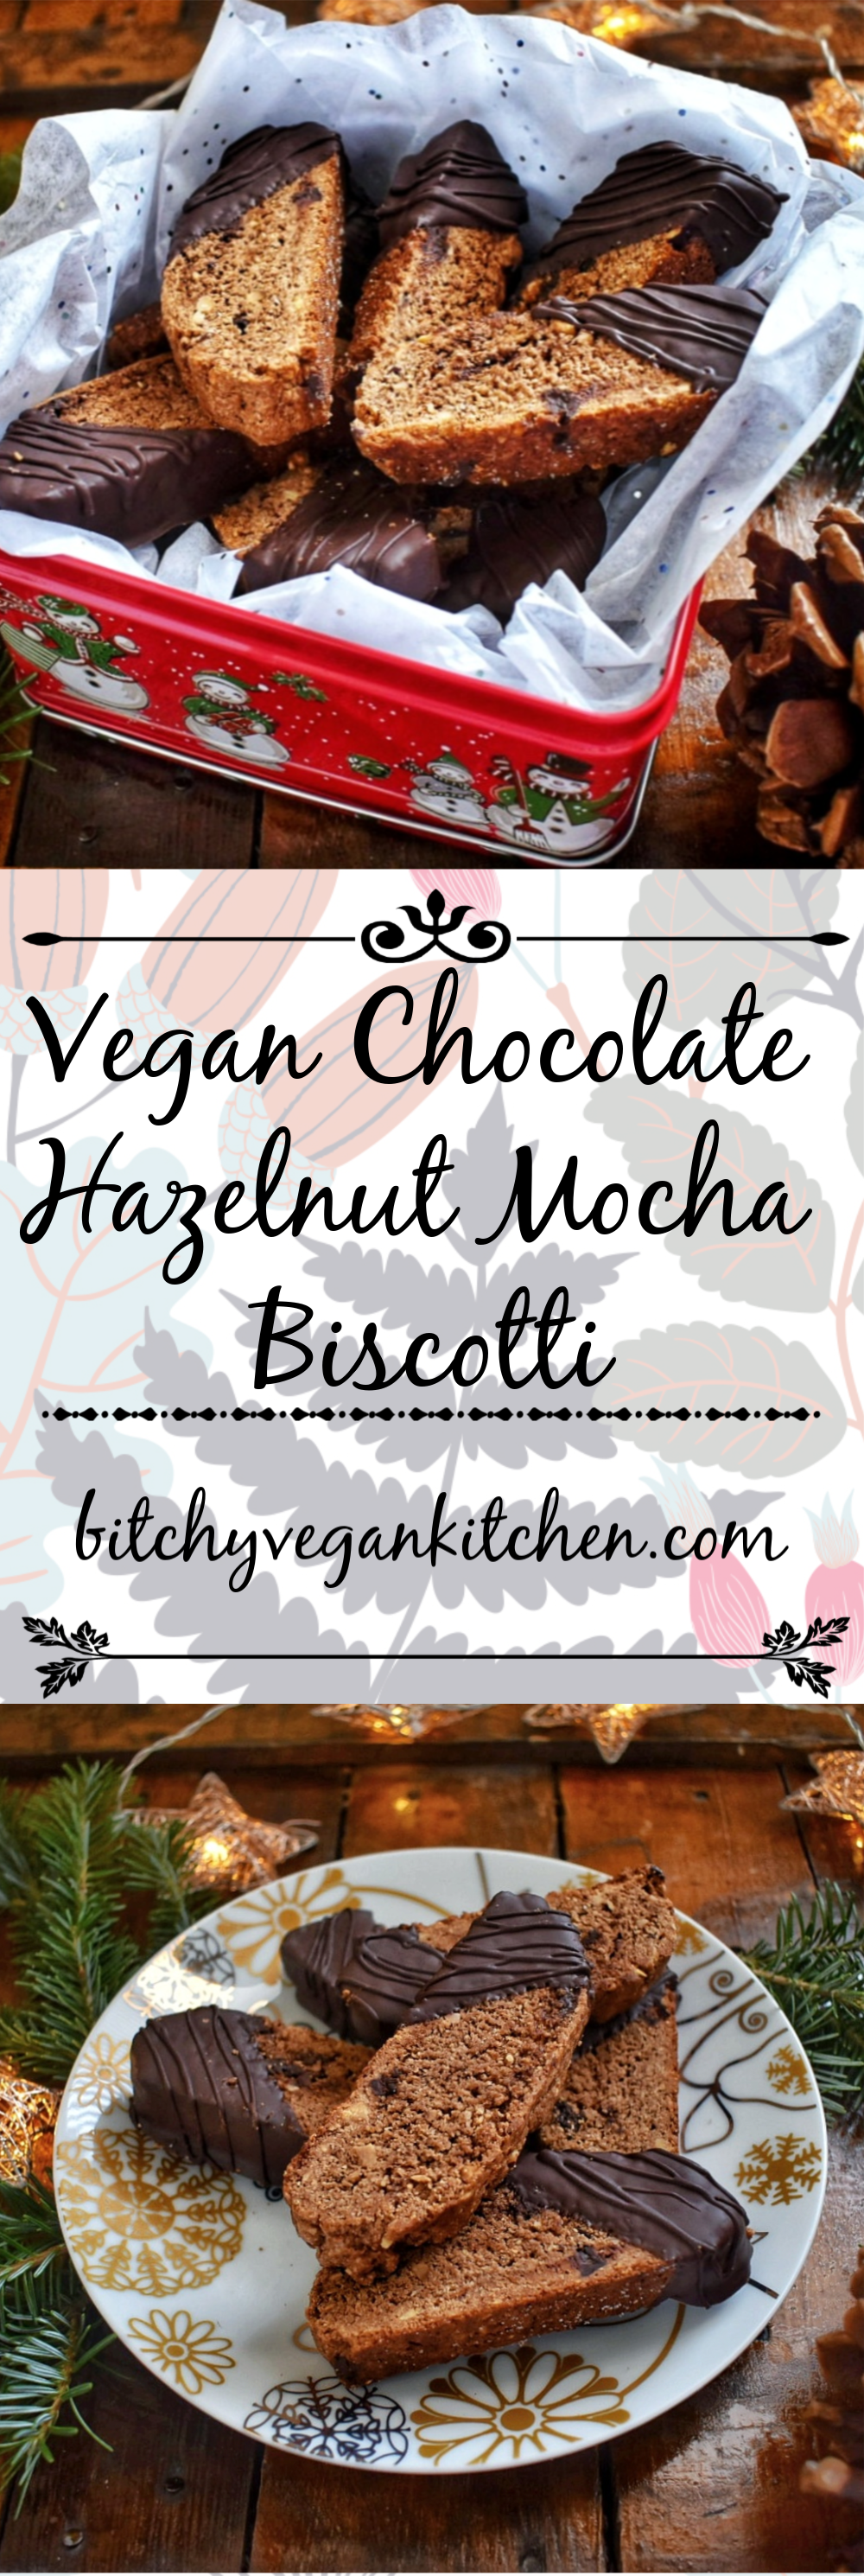 Vegan Chocolate Hazelnut Mocha Biscotti - The Bitchy Baker